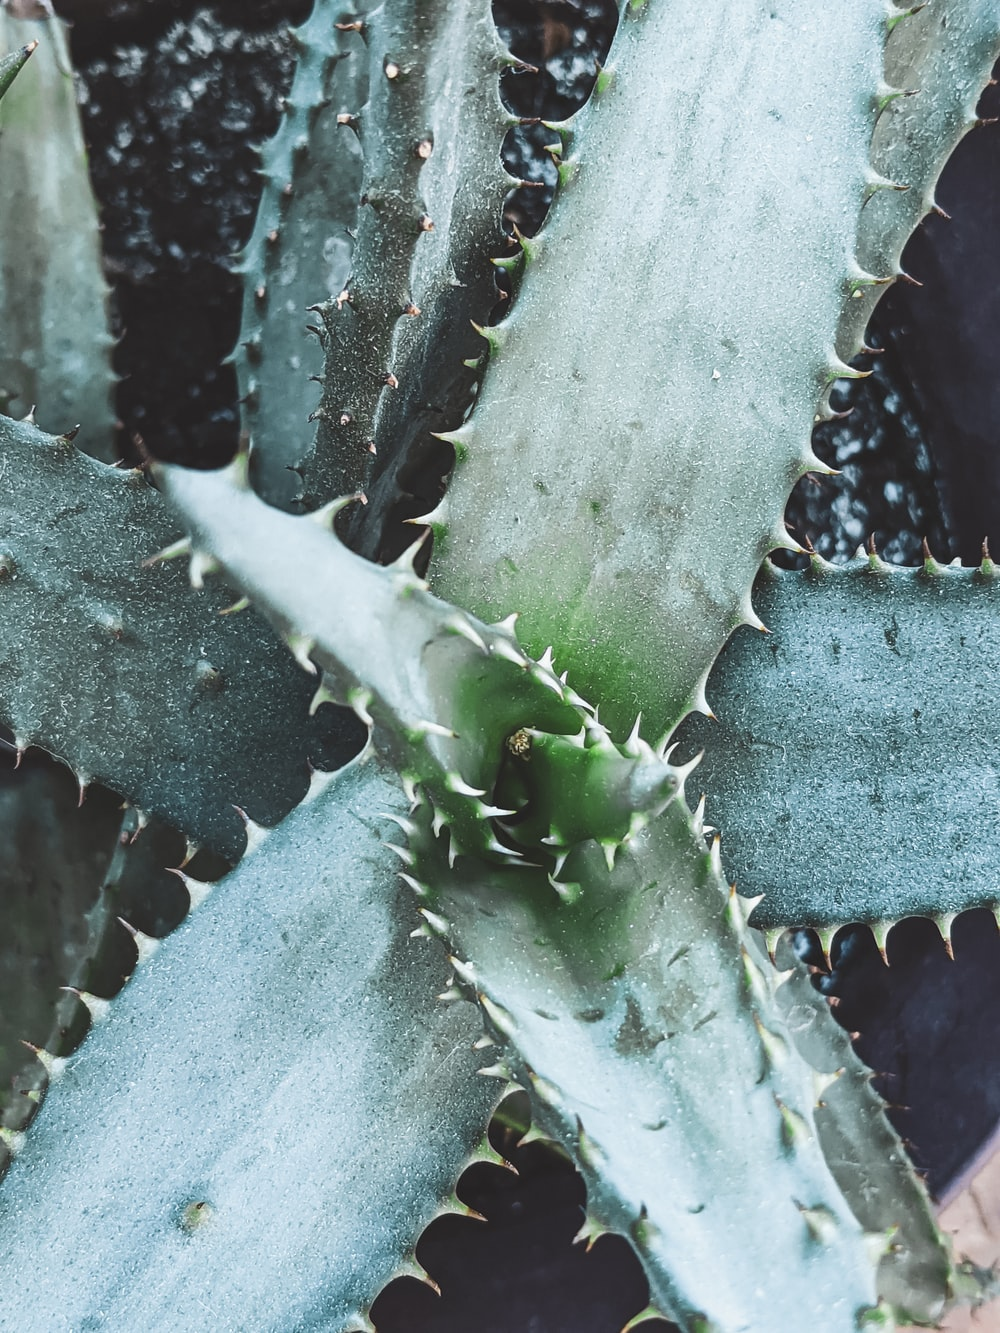 green cactus plant with water droplets